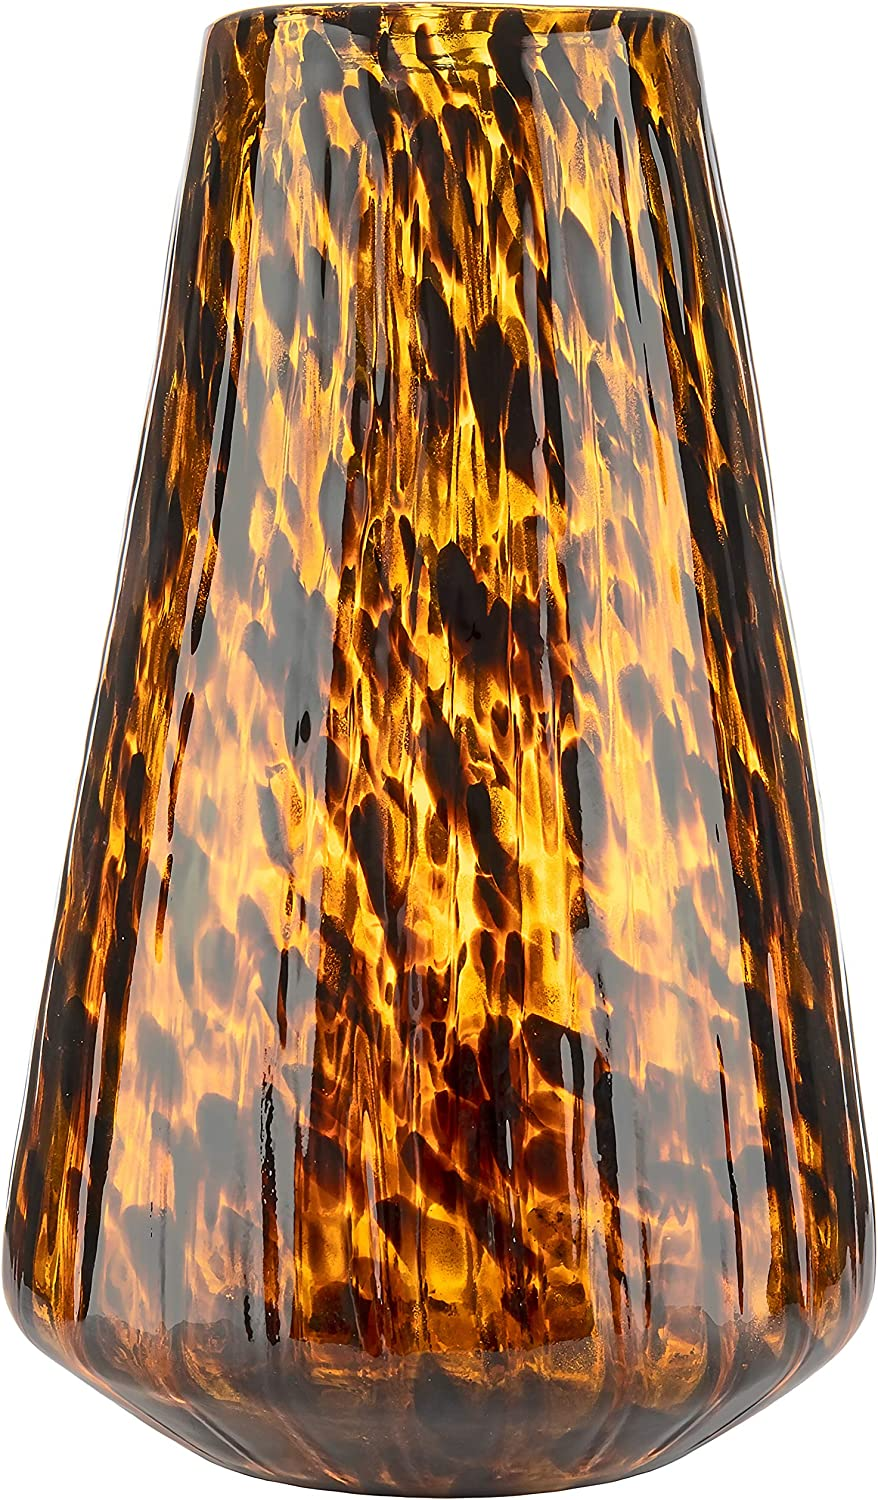 Large Handmade & Mouthblown Brown & Black Glass Decorative Flower Vase for Home Decor – Centerpiece or Floor – 14 inch/35.5cm Tall – Living Room, Dining Table, Statement, Lobby, Office, Decoration.